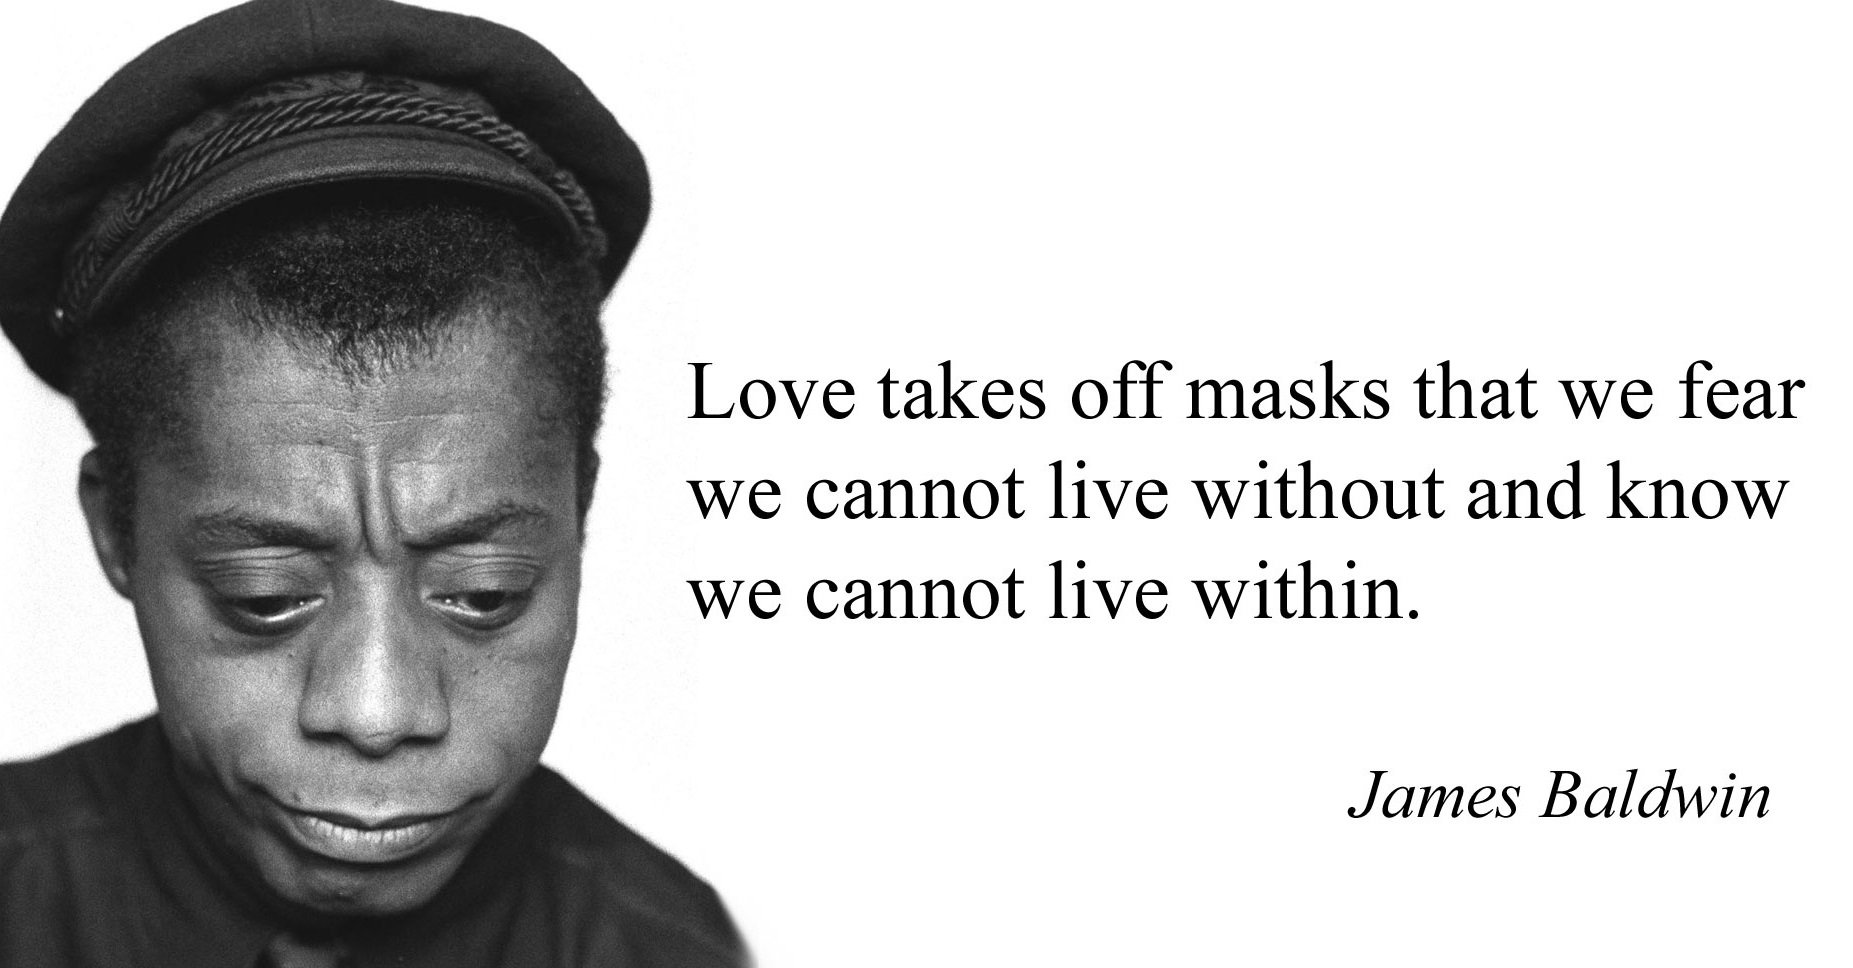 James Baldwin on Masks